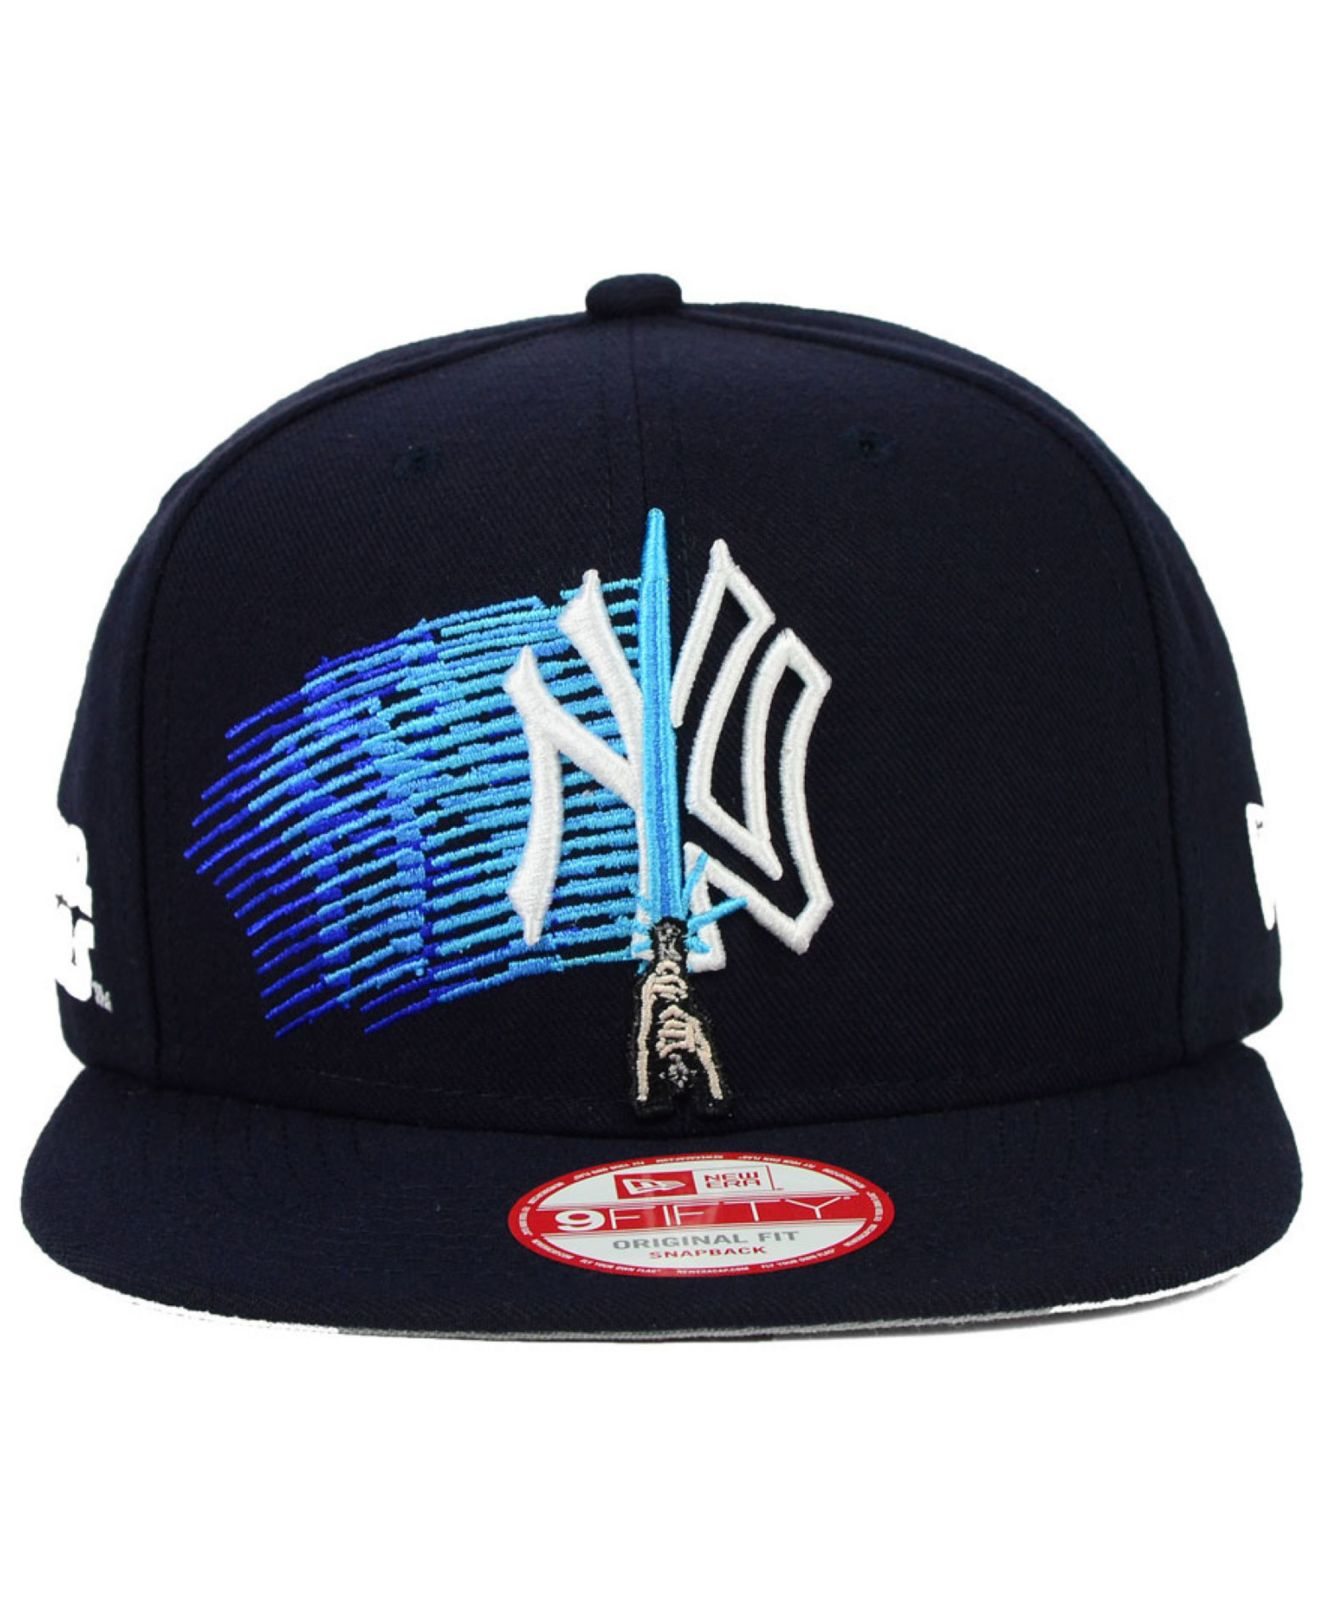 d33b62af71 ... low price lyst ktz new york yankees star wars logoswipe 9fifty snapback  cap in blue for